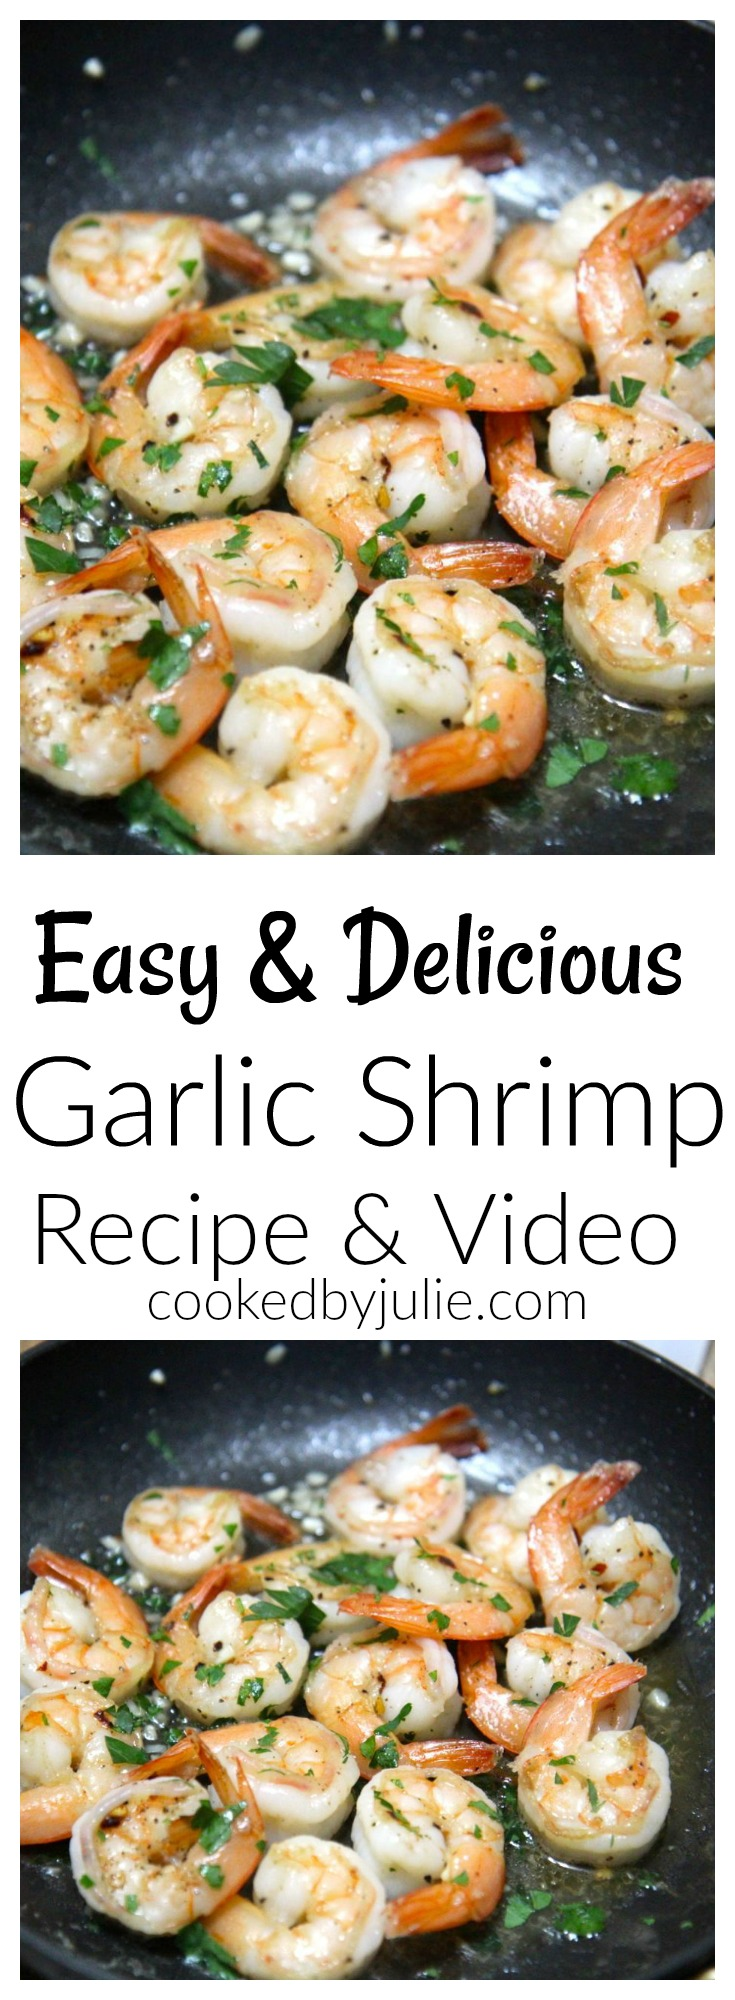 Easy & Delicious Grilled Shrimp | Recipe and Video from Cooked by Julie